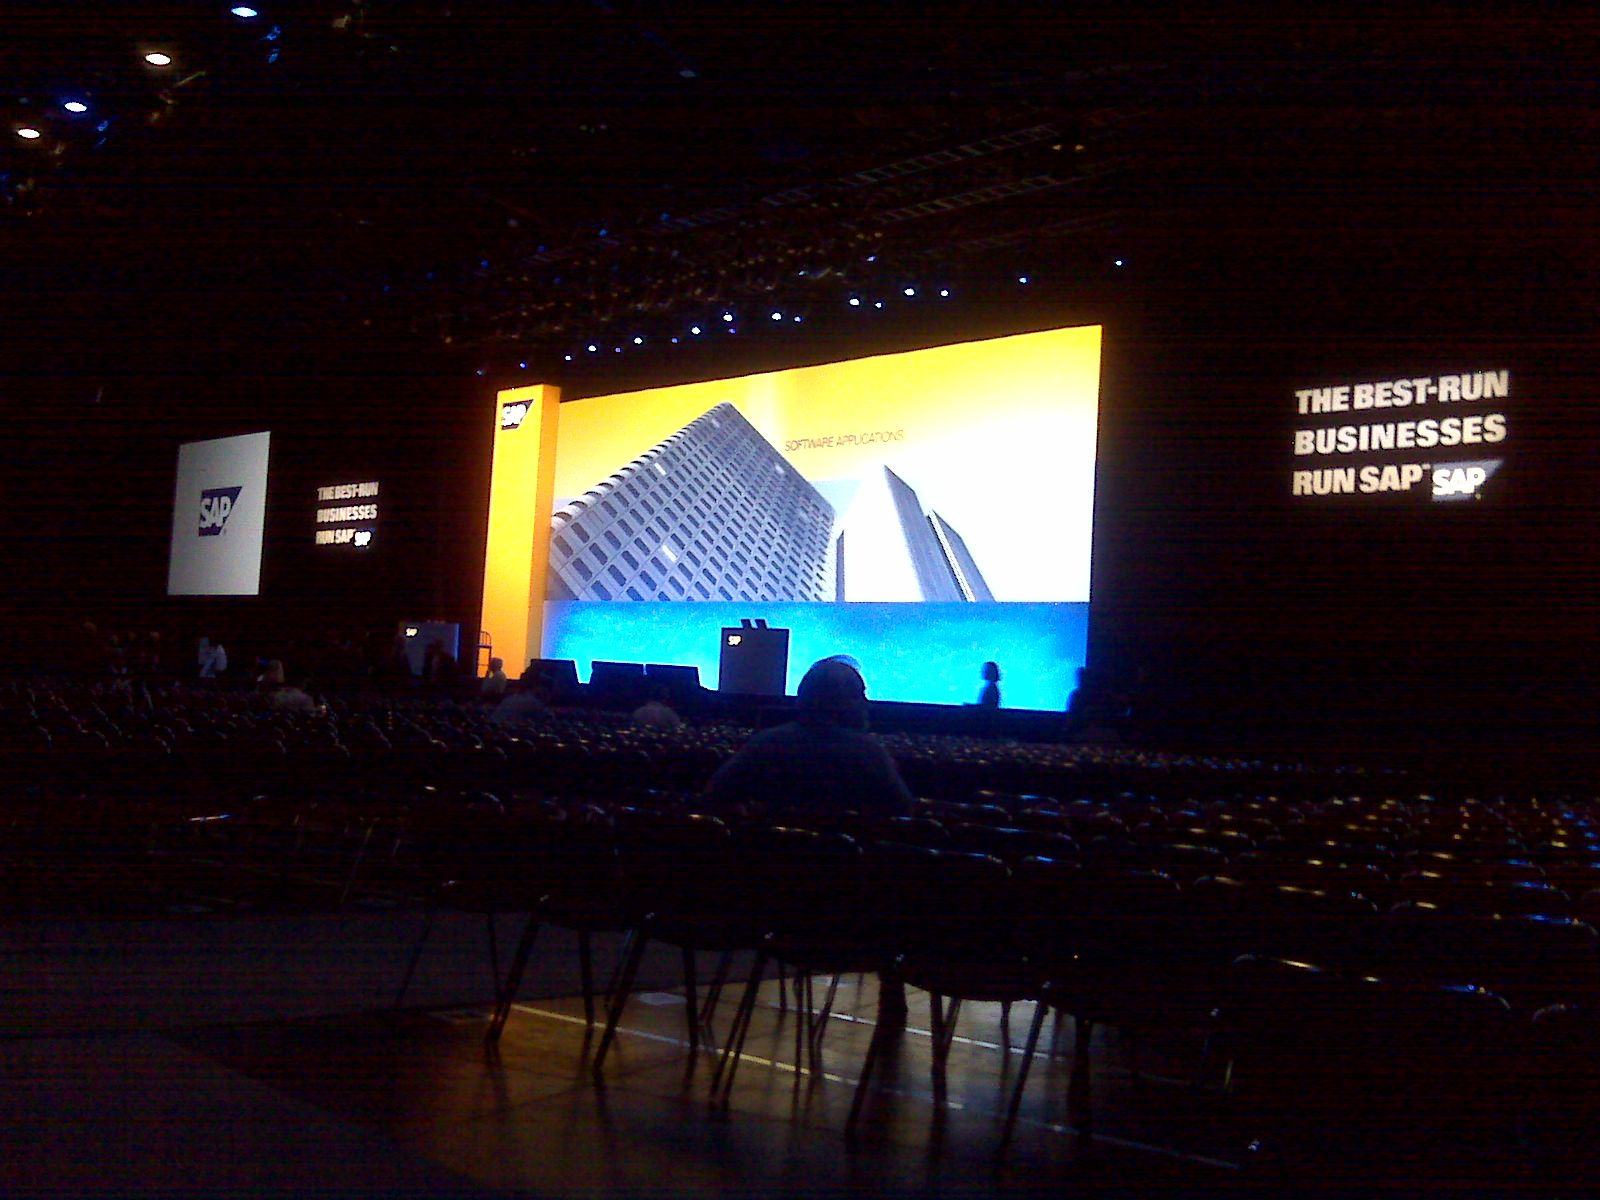 The main key note thearte that held all 10,000 of us